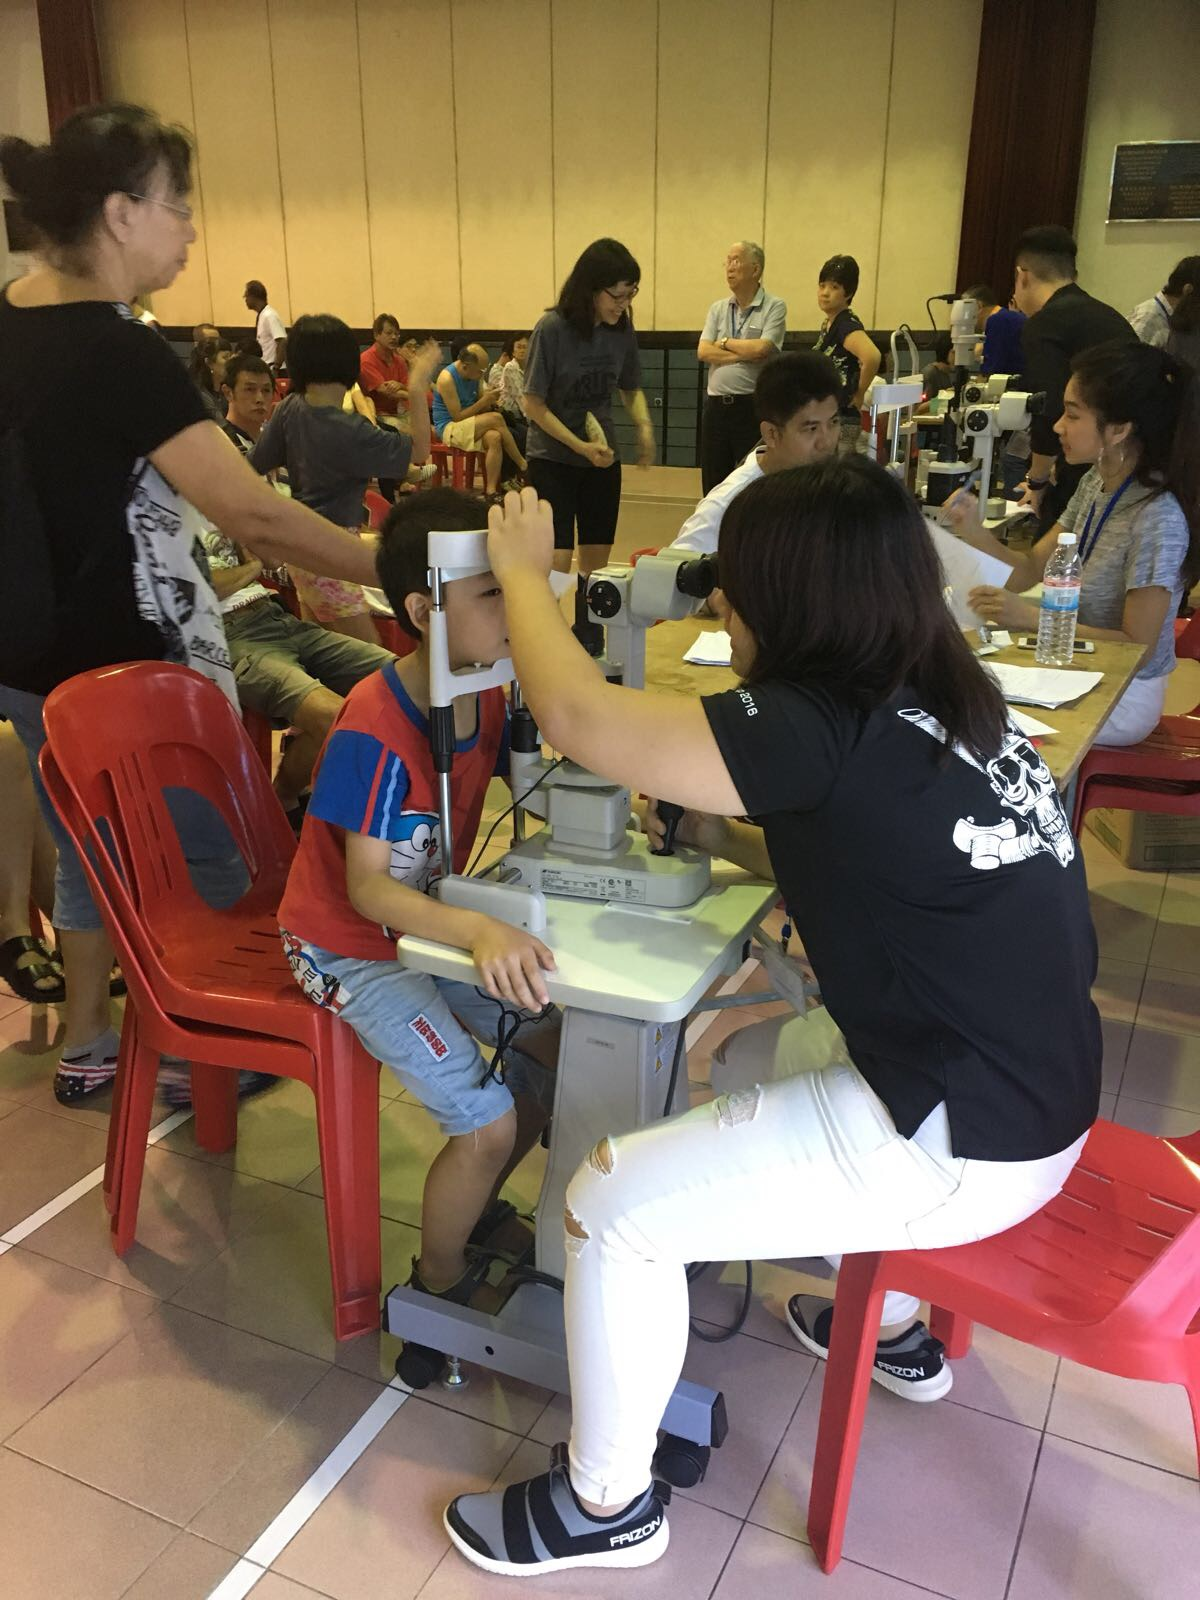 Volunteer optometrists examining the anterior segment of residents' eyes during an eye screening conducted at Choa Chu Kang Community Centre on 8 October 2017.